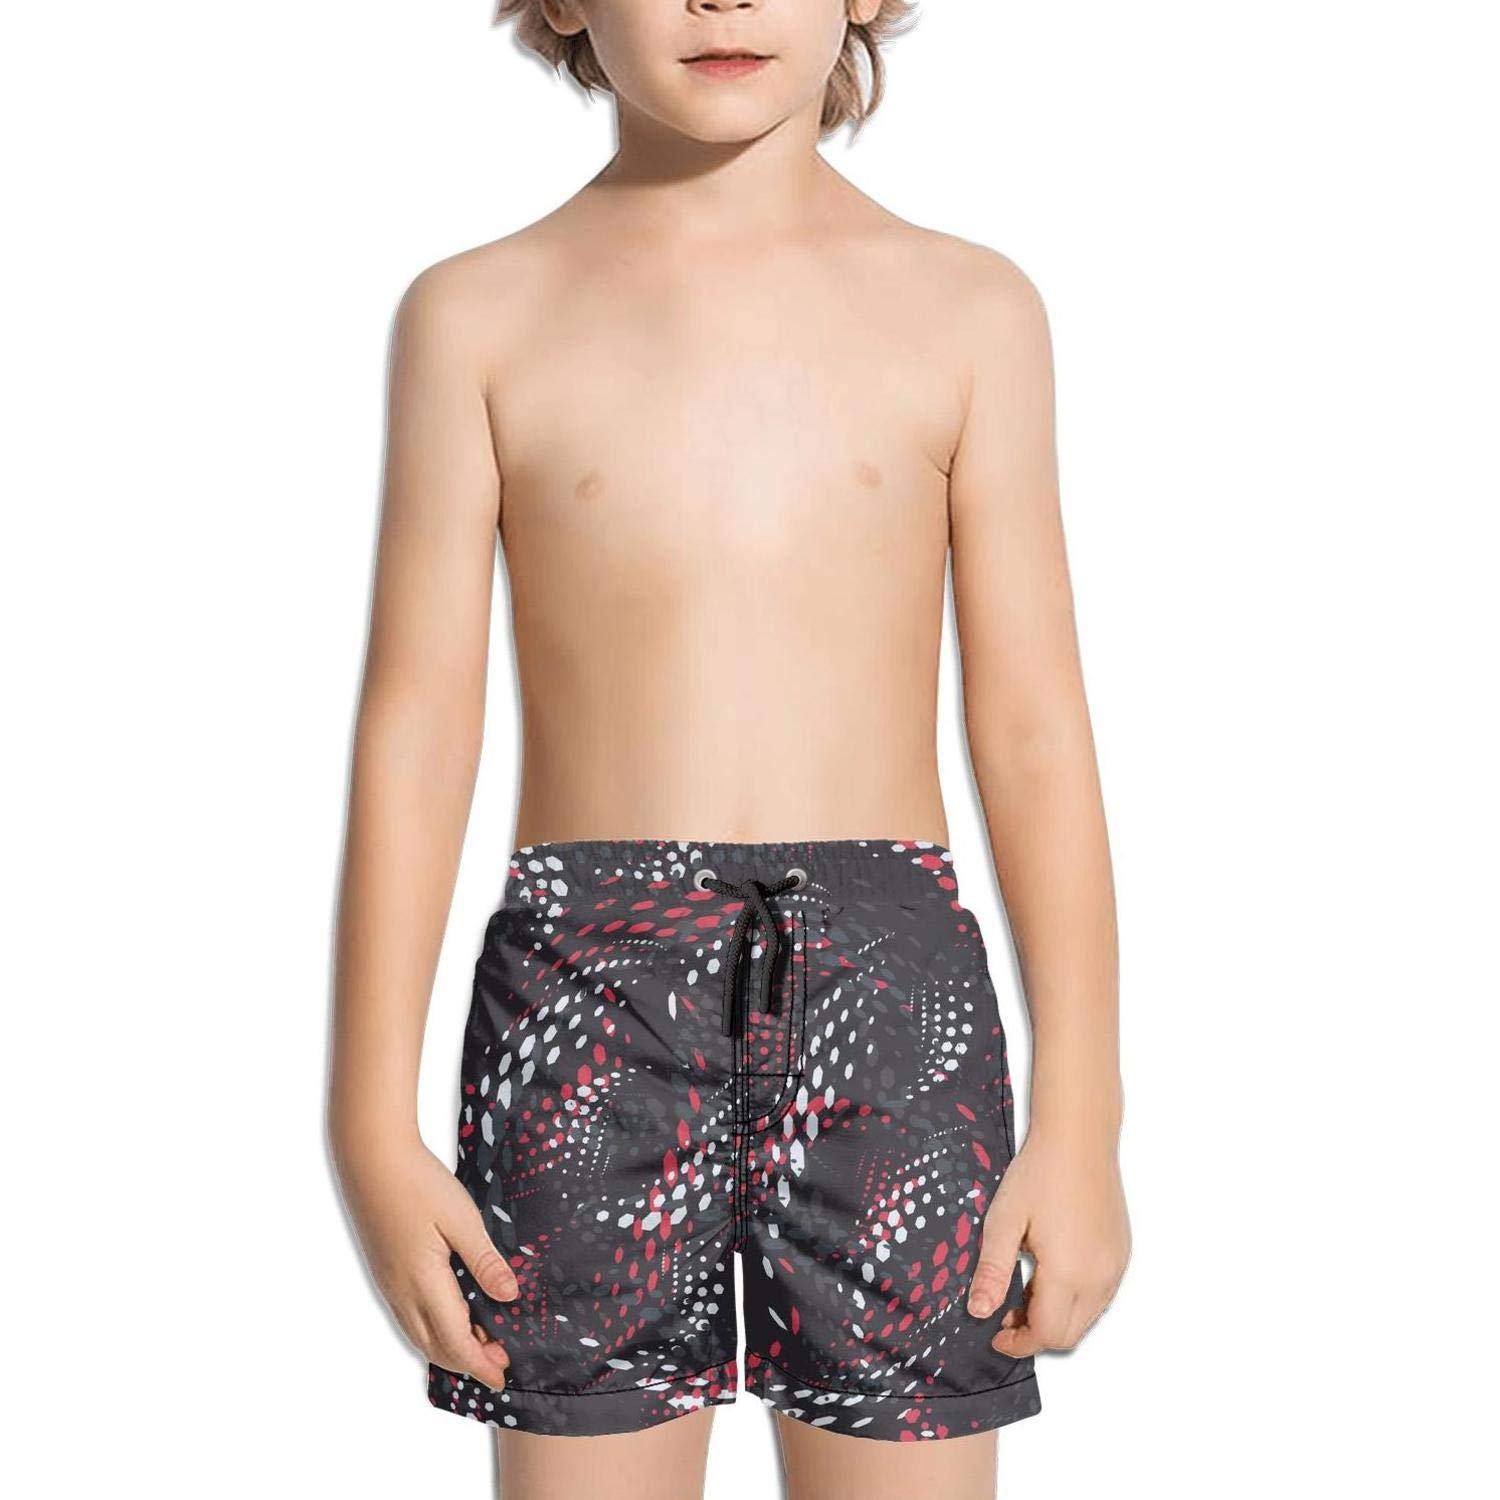 jhnkmmnc Camouflage Fading Lines Trendy Urban Colorful Beachwear Sporty Beach Swimming Trunks Shorts